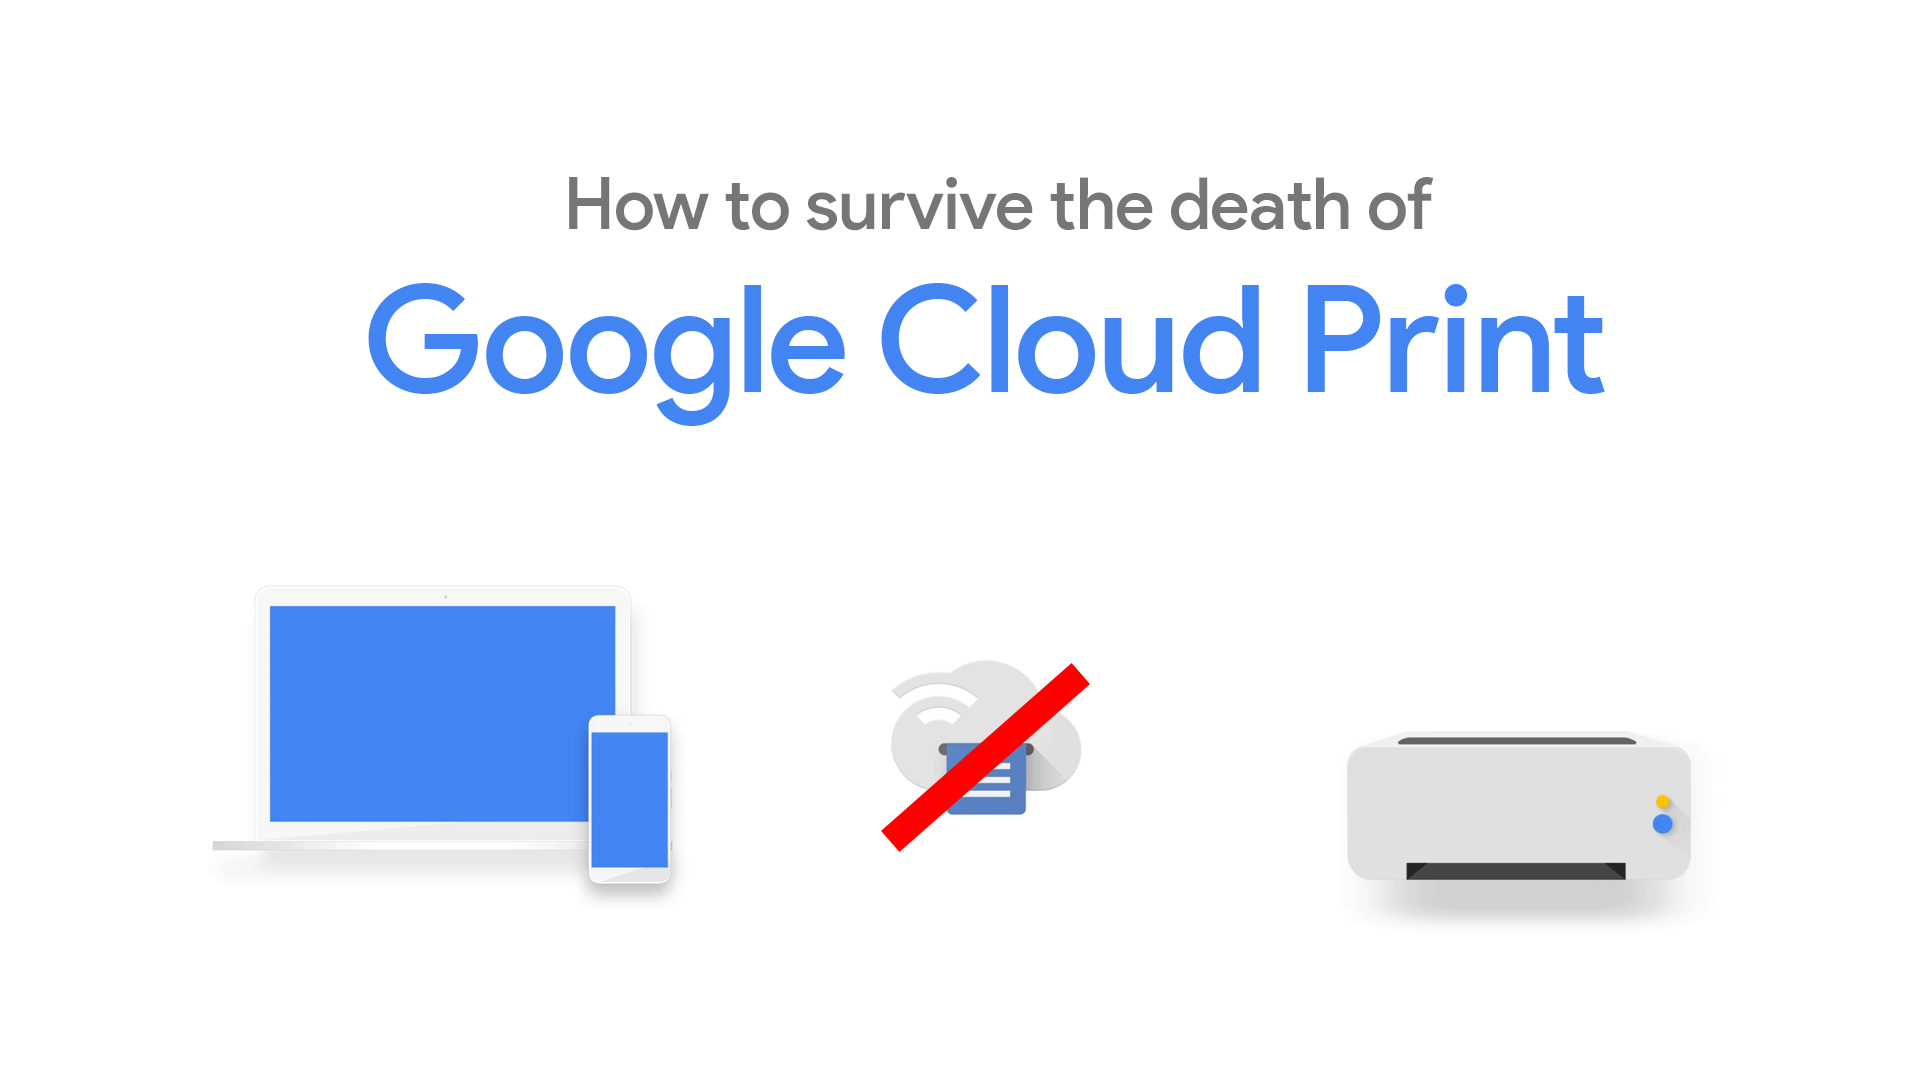 How to enable wireless printing for your students or employees and survive the death of Google Cloud Print